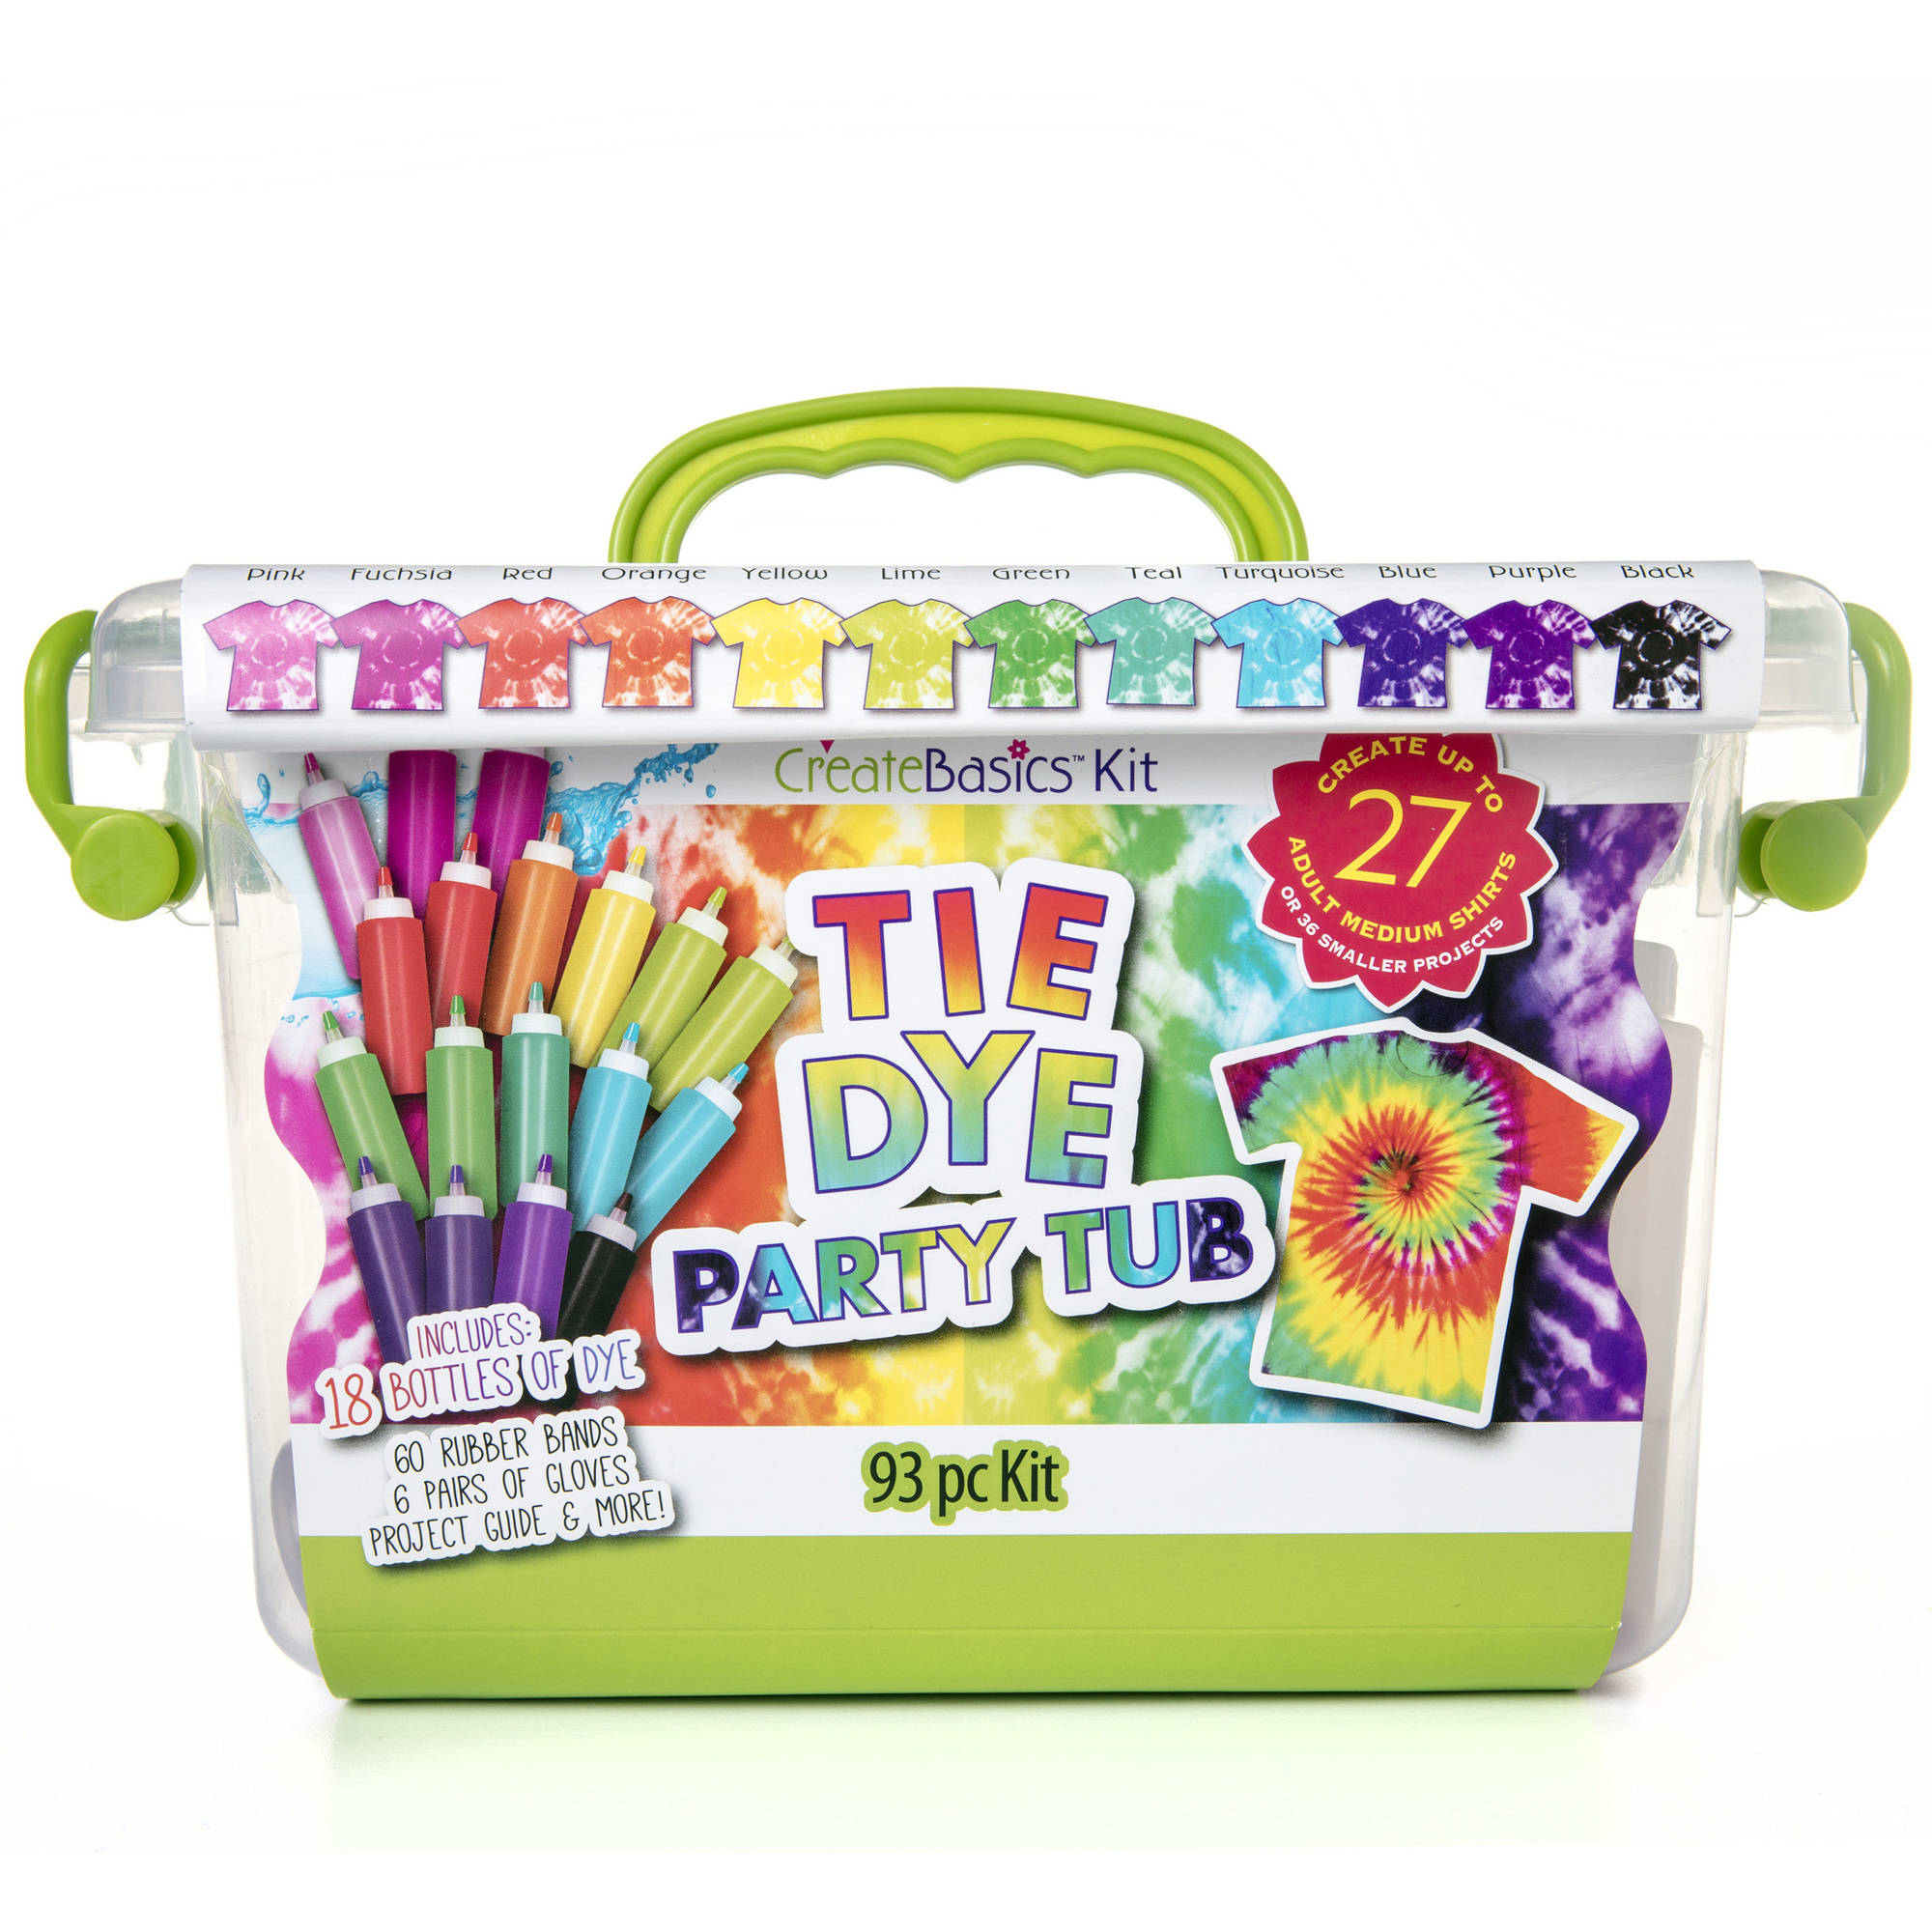 Create Basics Tie Dye Party Tub, 93 Piece